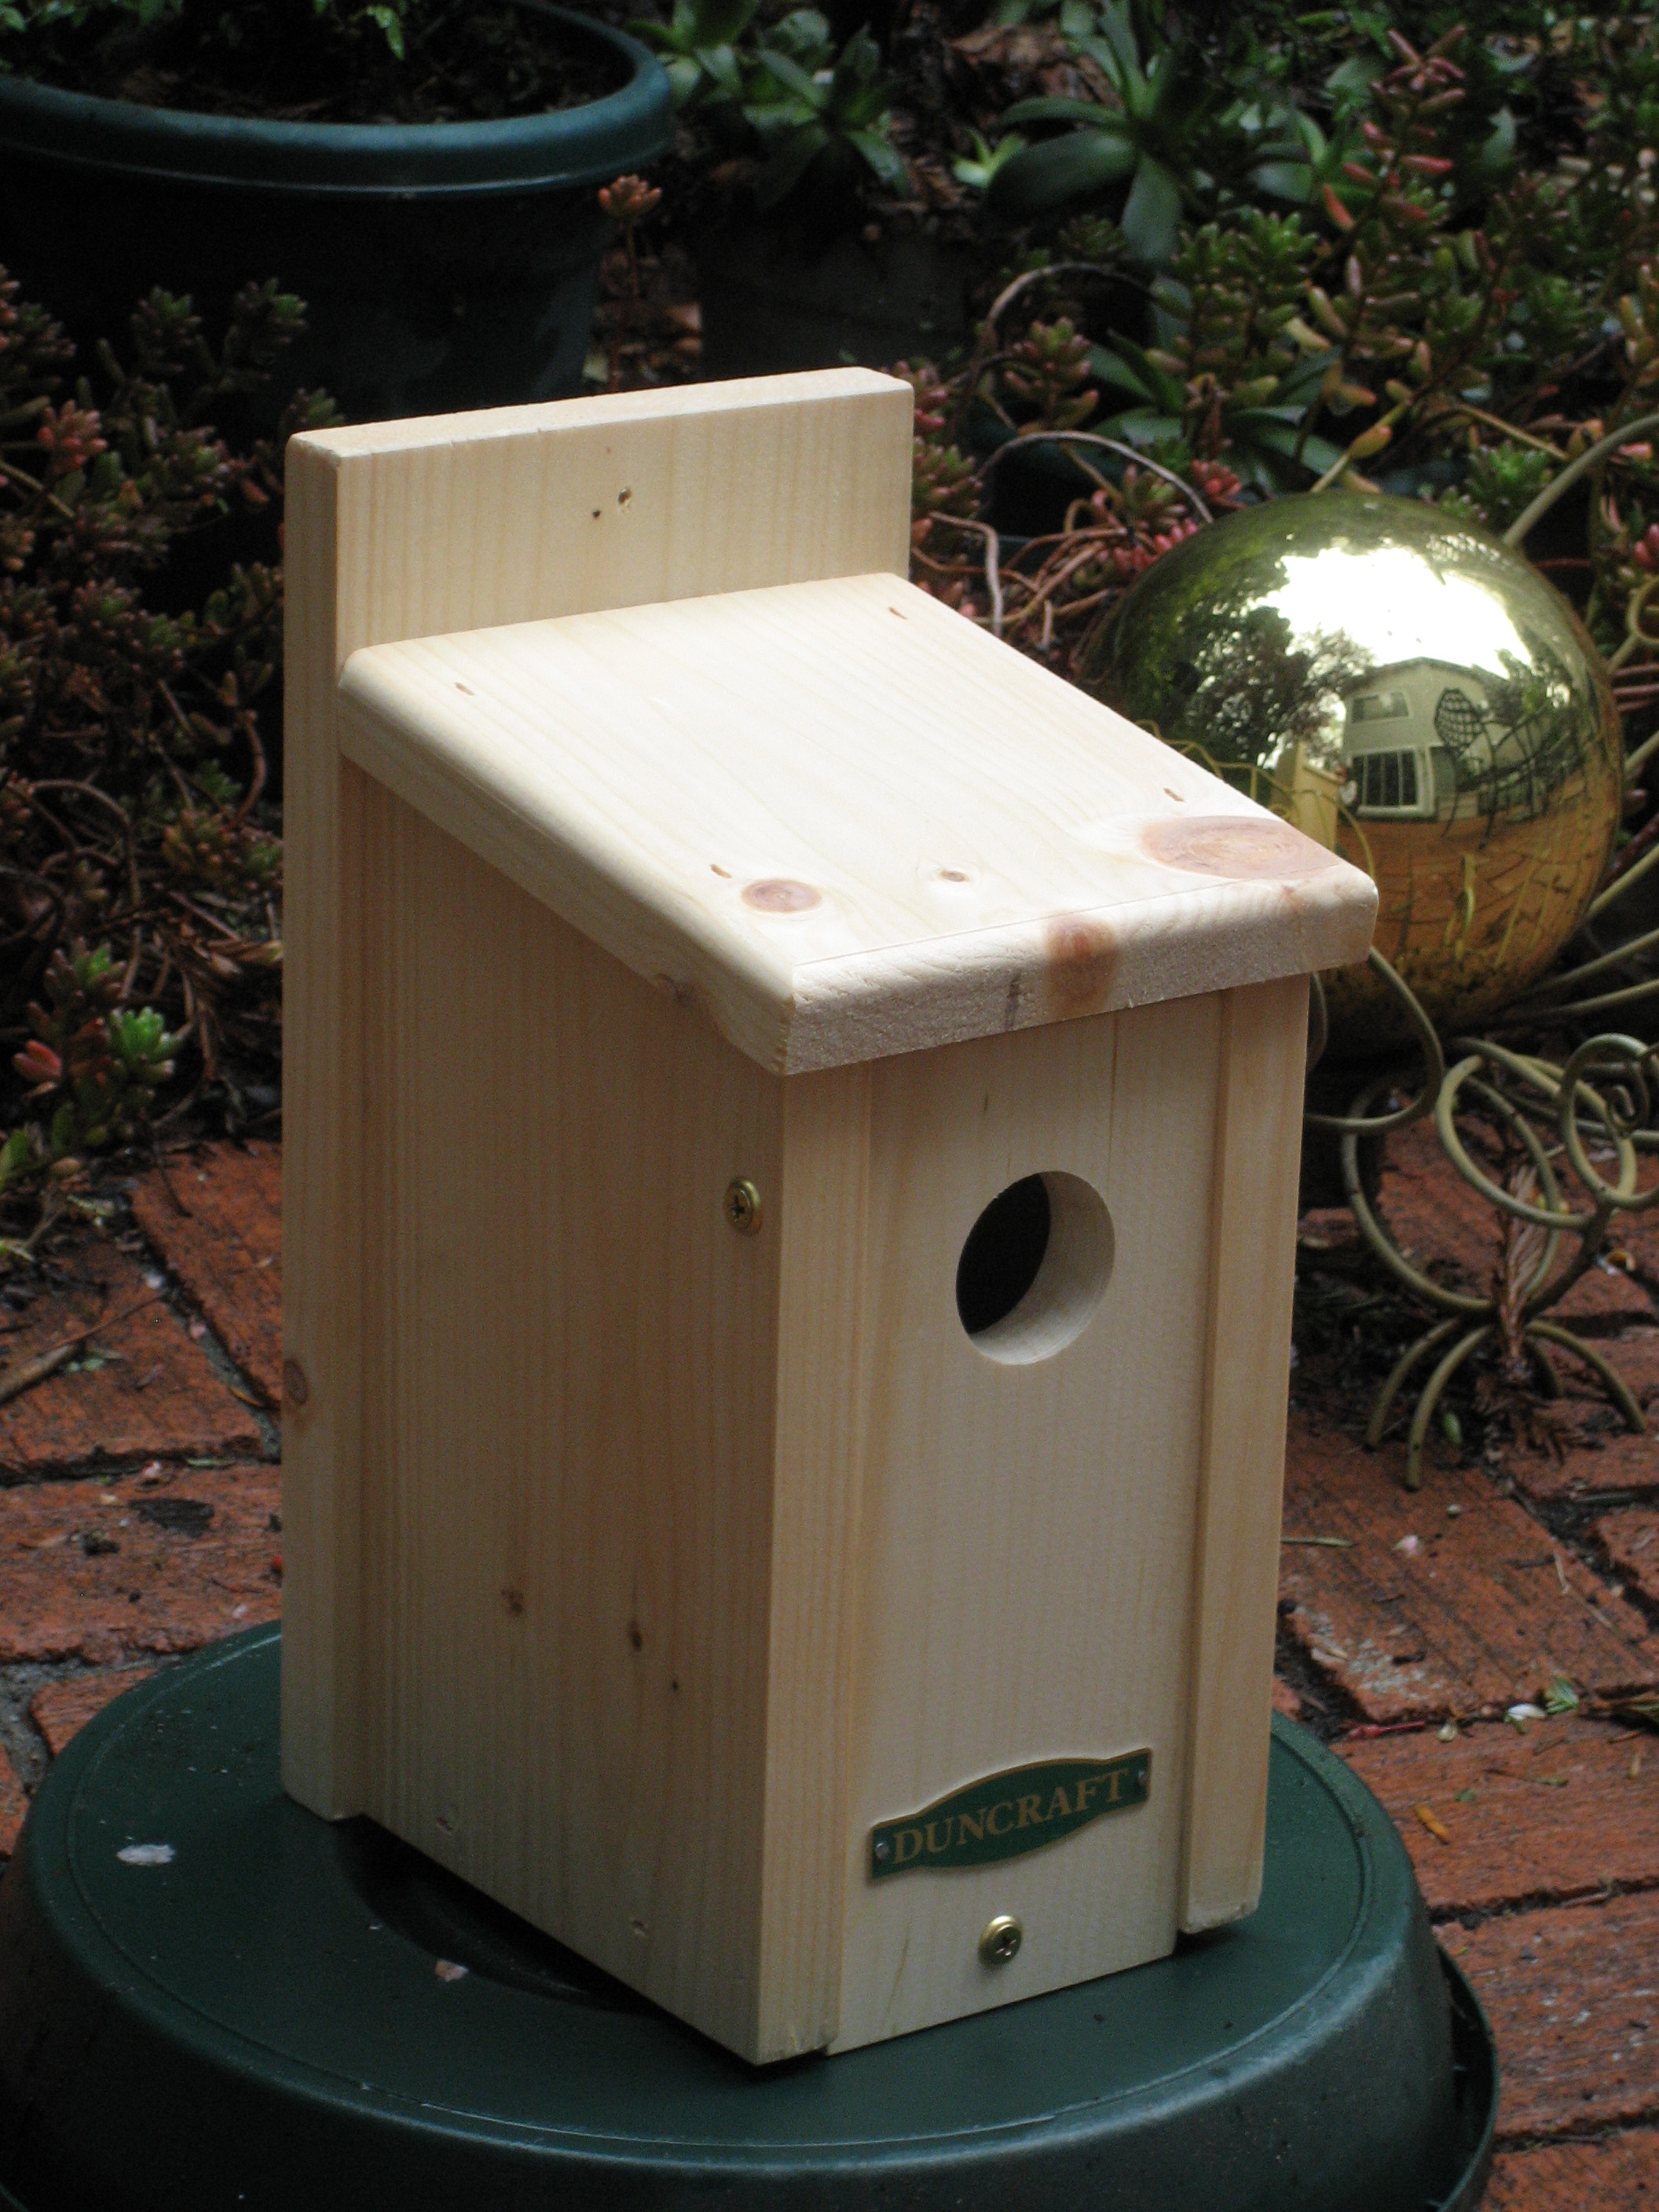 Plans for building birdhouses - Birdhouse dimensions